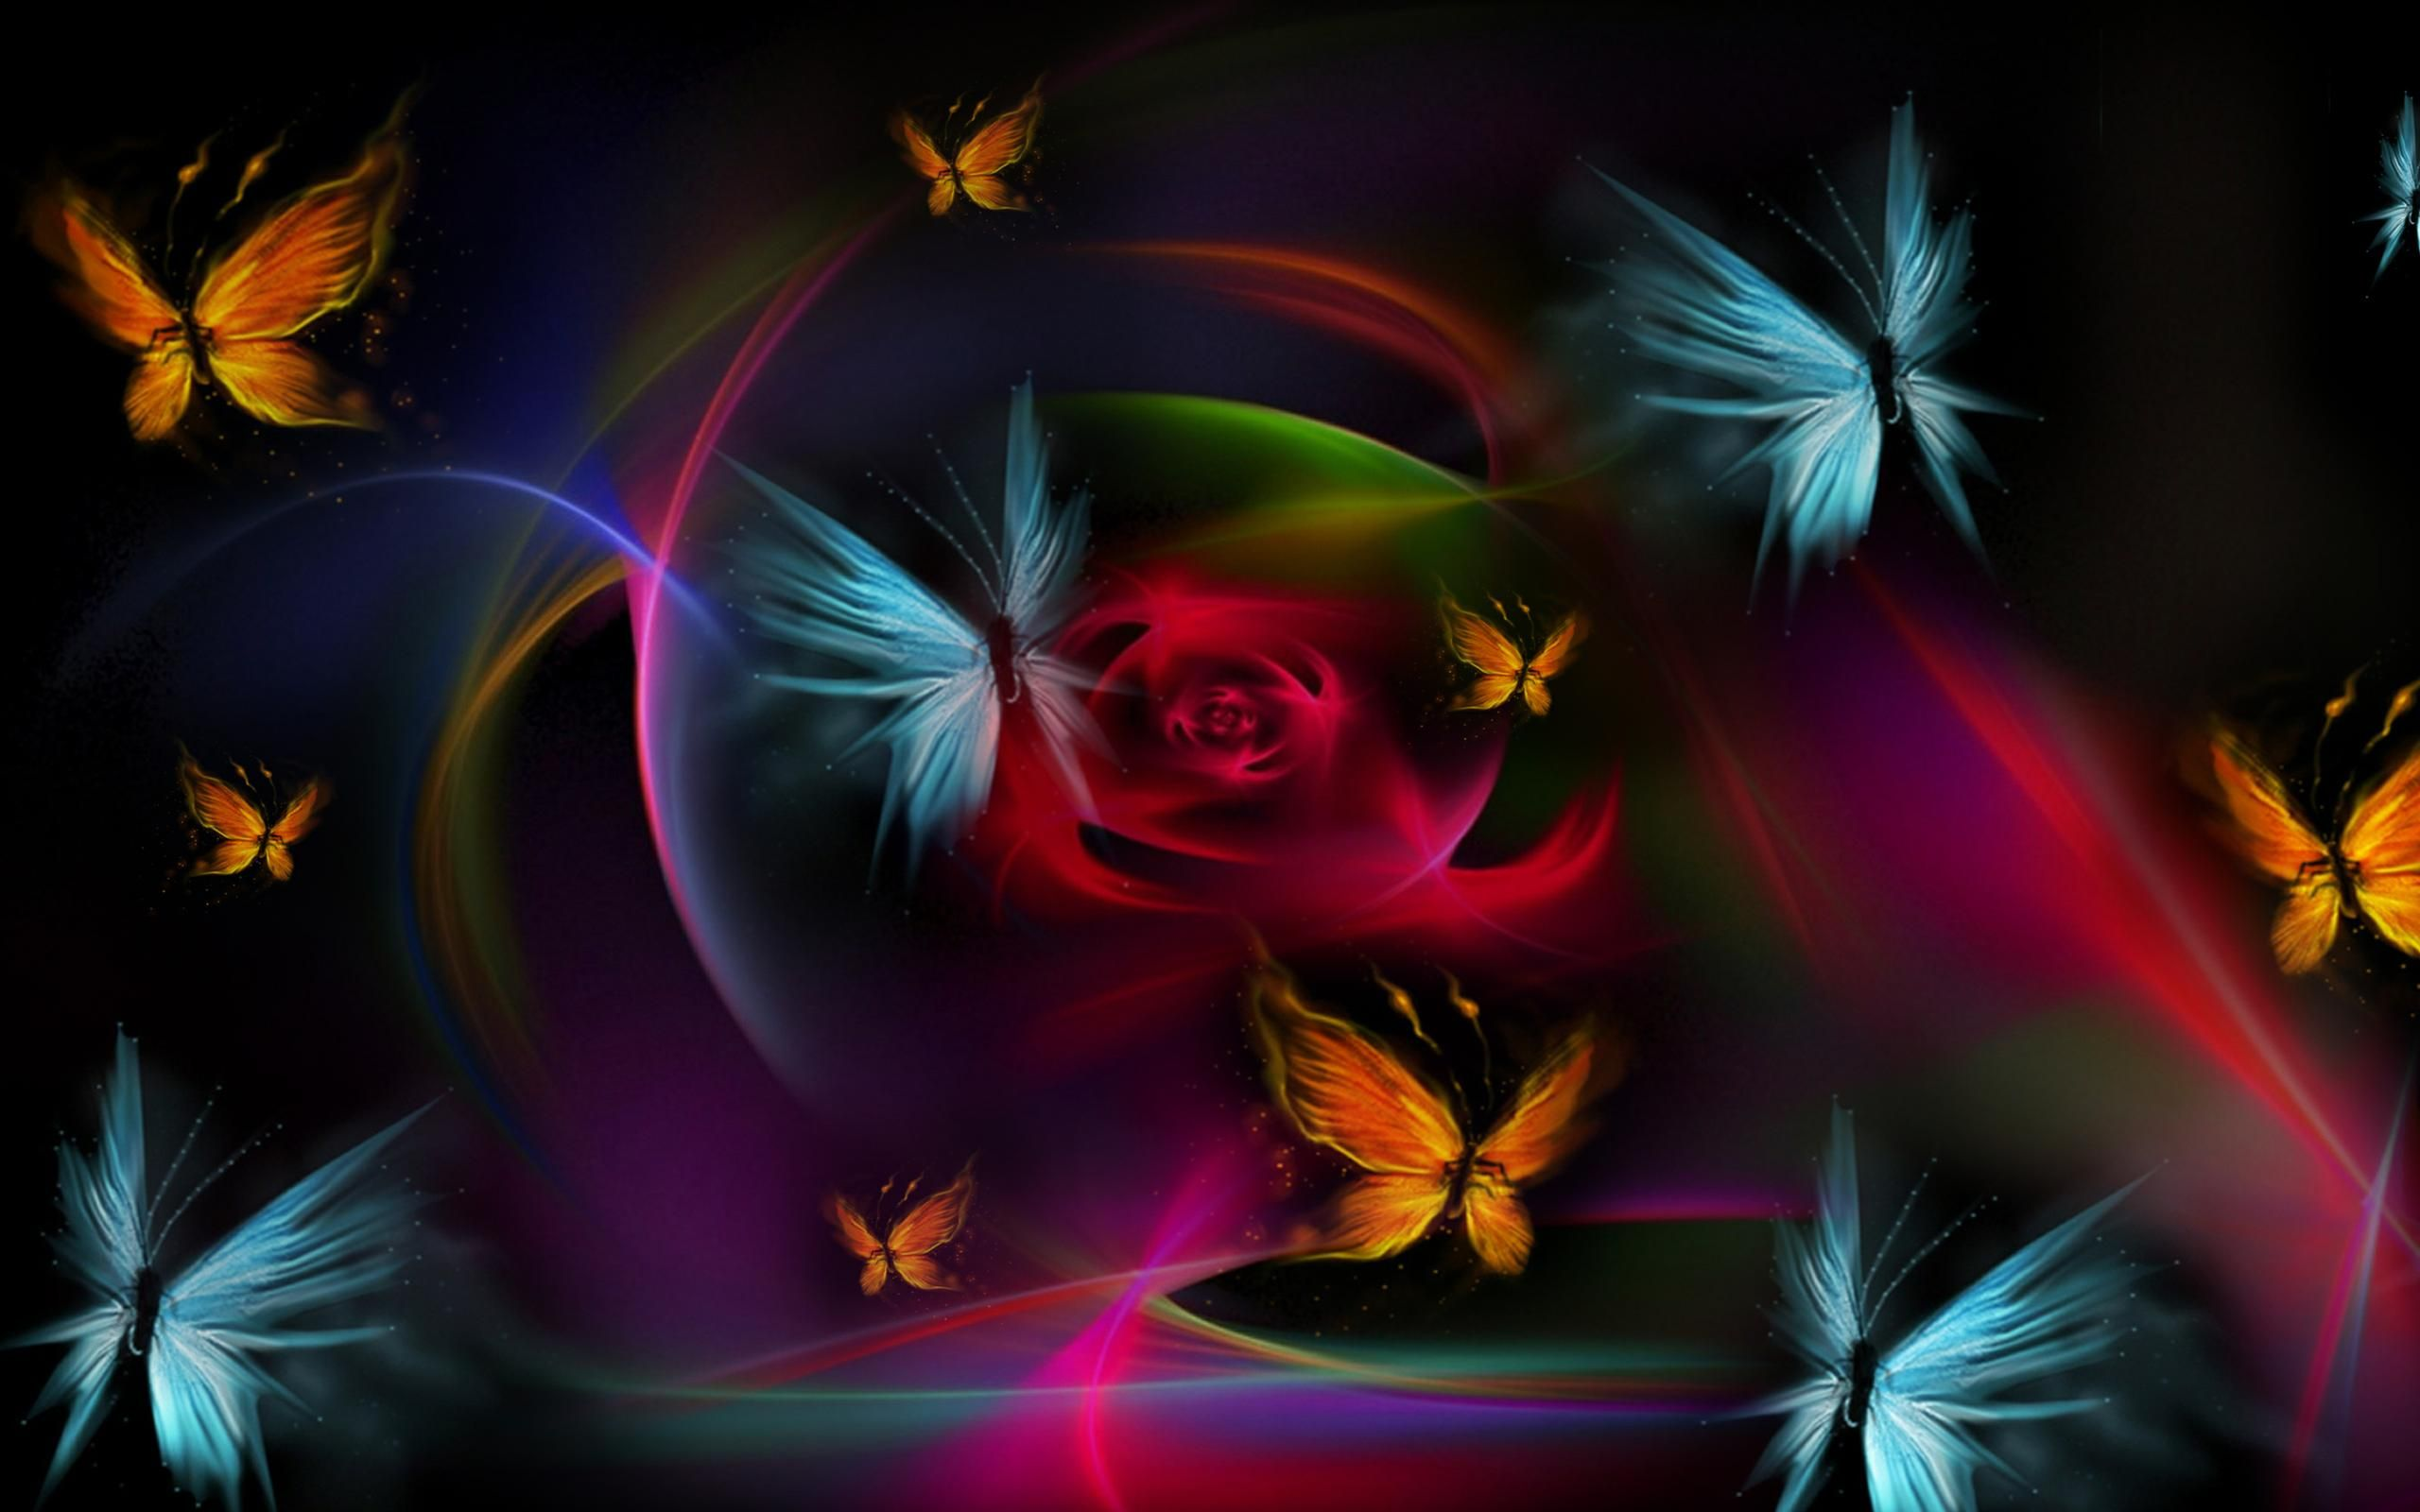 butterfly wallpapers backgrounds images freecreatives a· dragonfly wallpaperfree